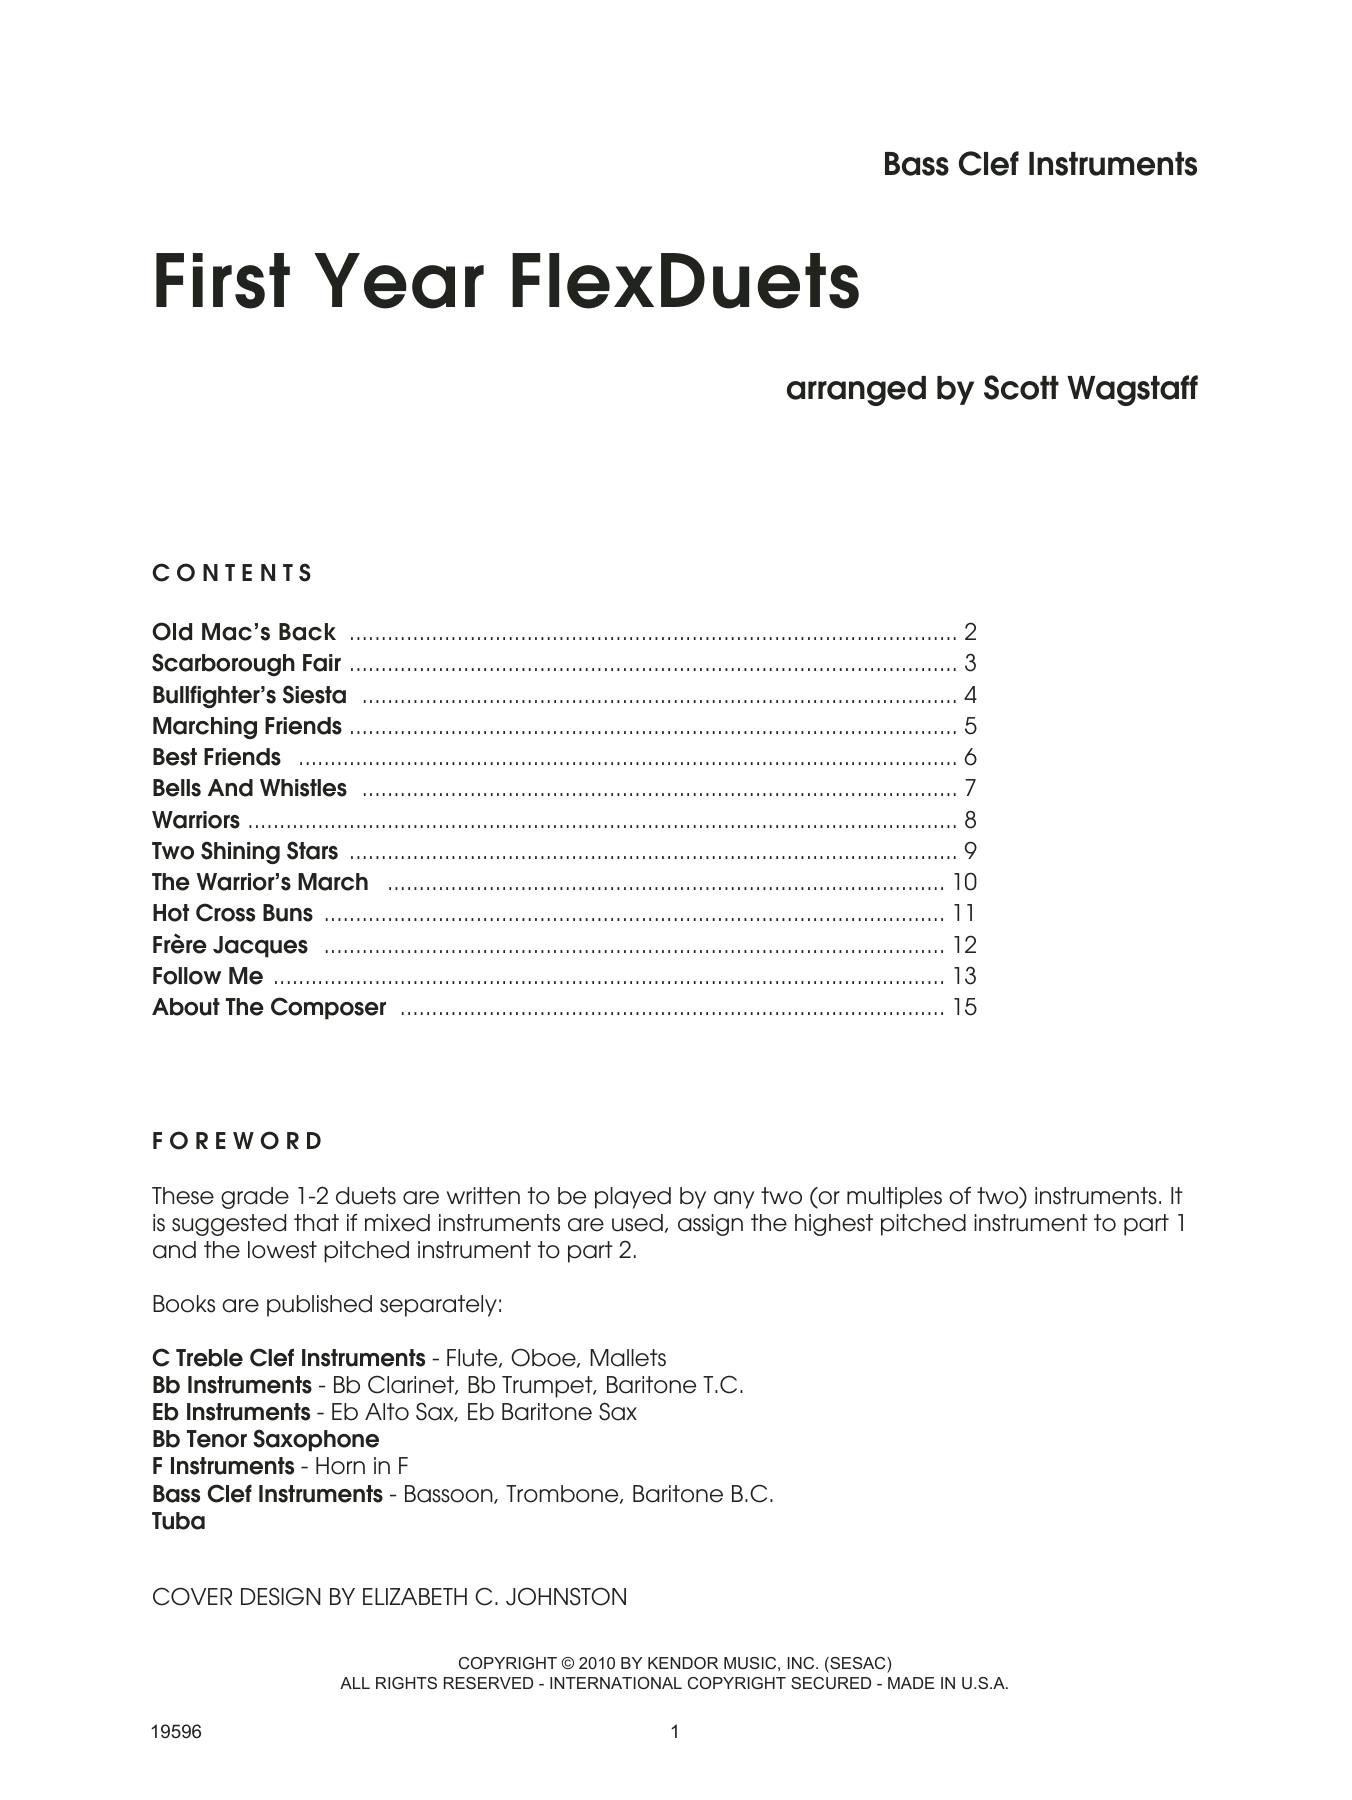 Scott Wagstaff First Year FlexDuets - Bass Clef Instruments sheet music notes and chords